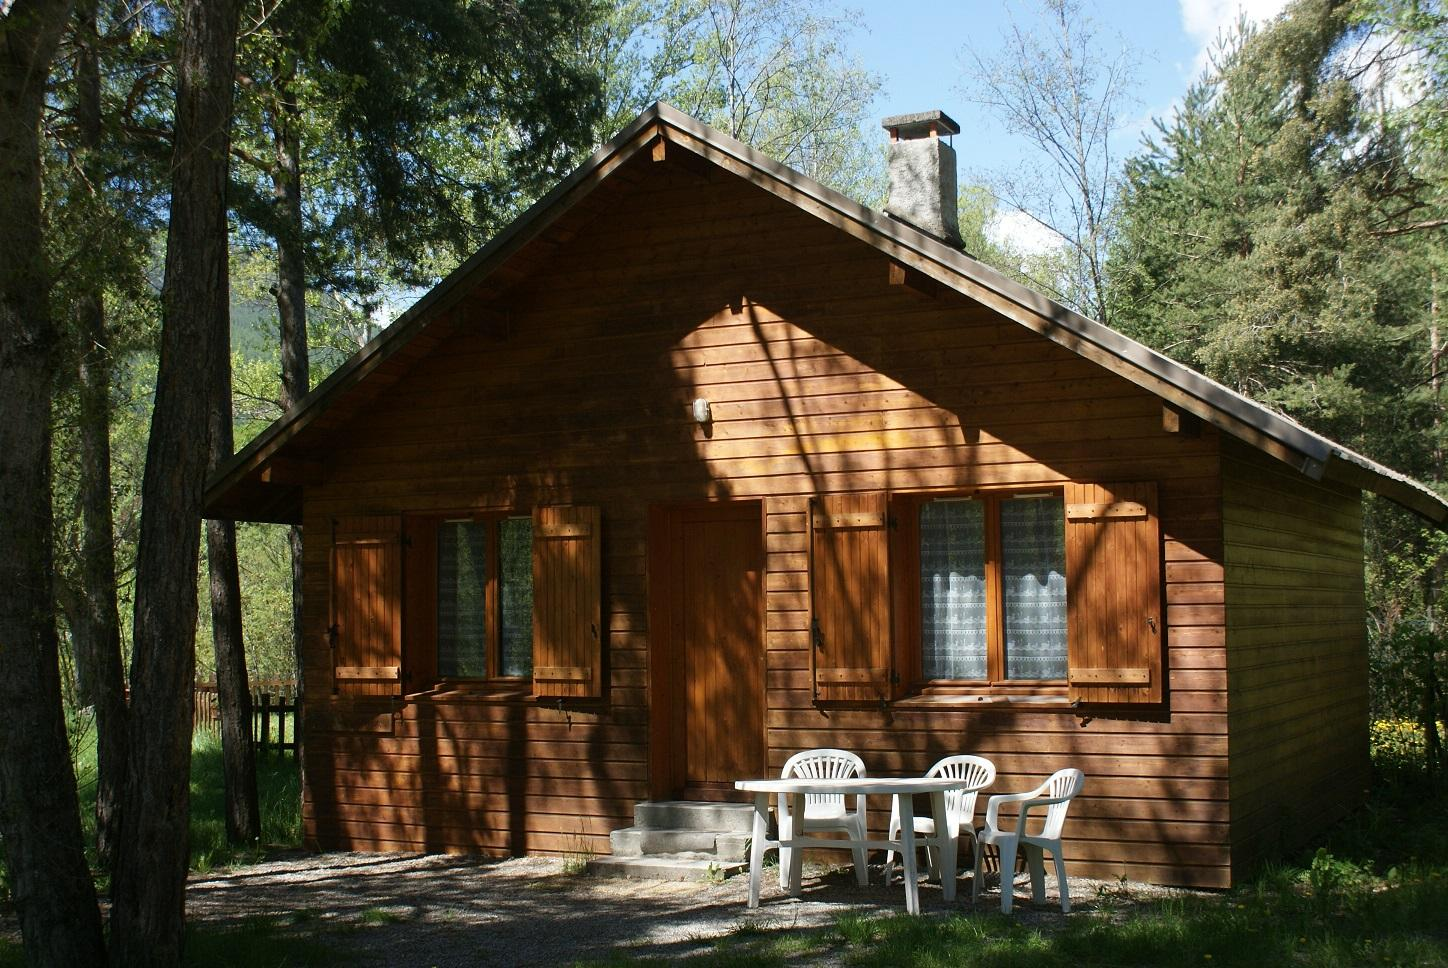 Location - Chalet 'Loisir' - Camping Saint-James Les Pins